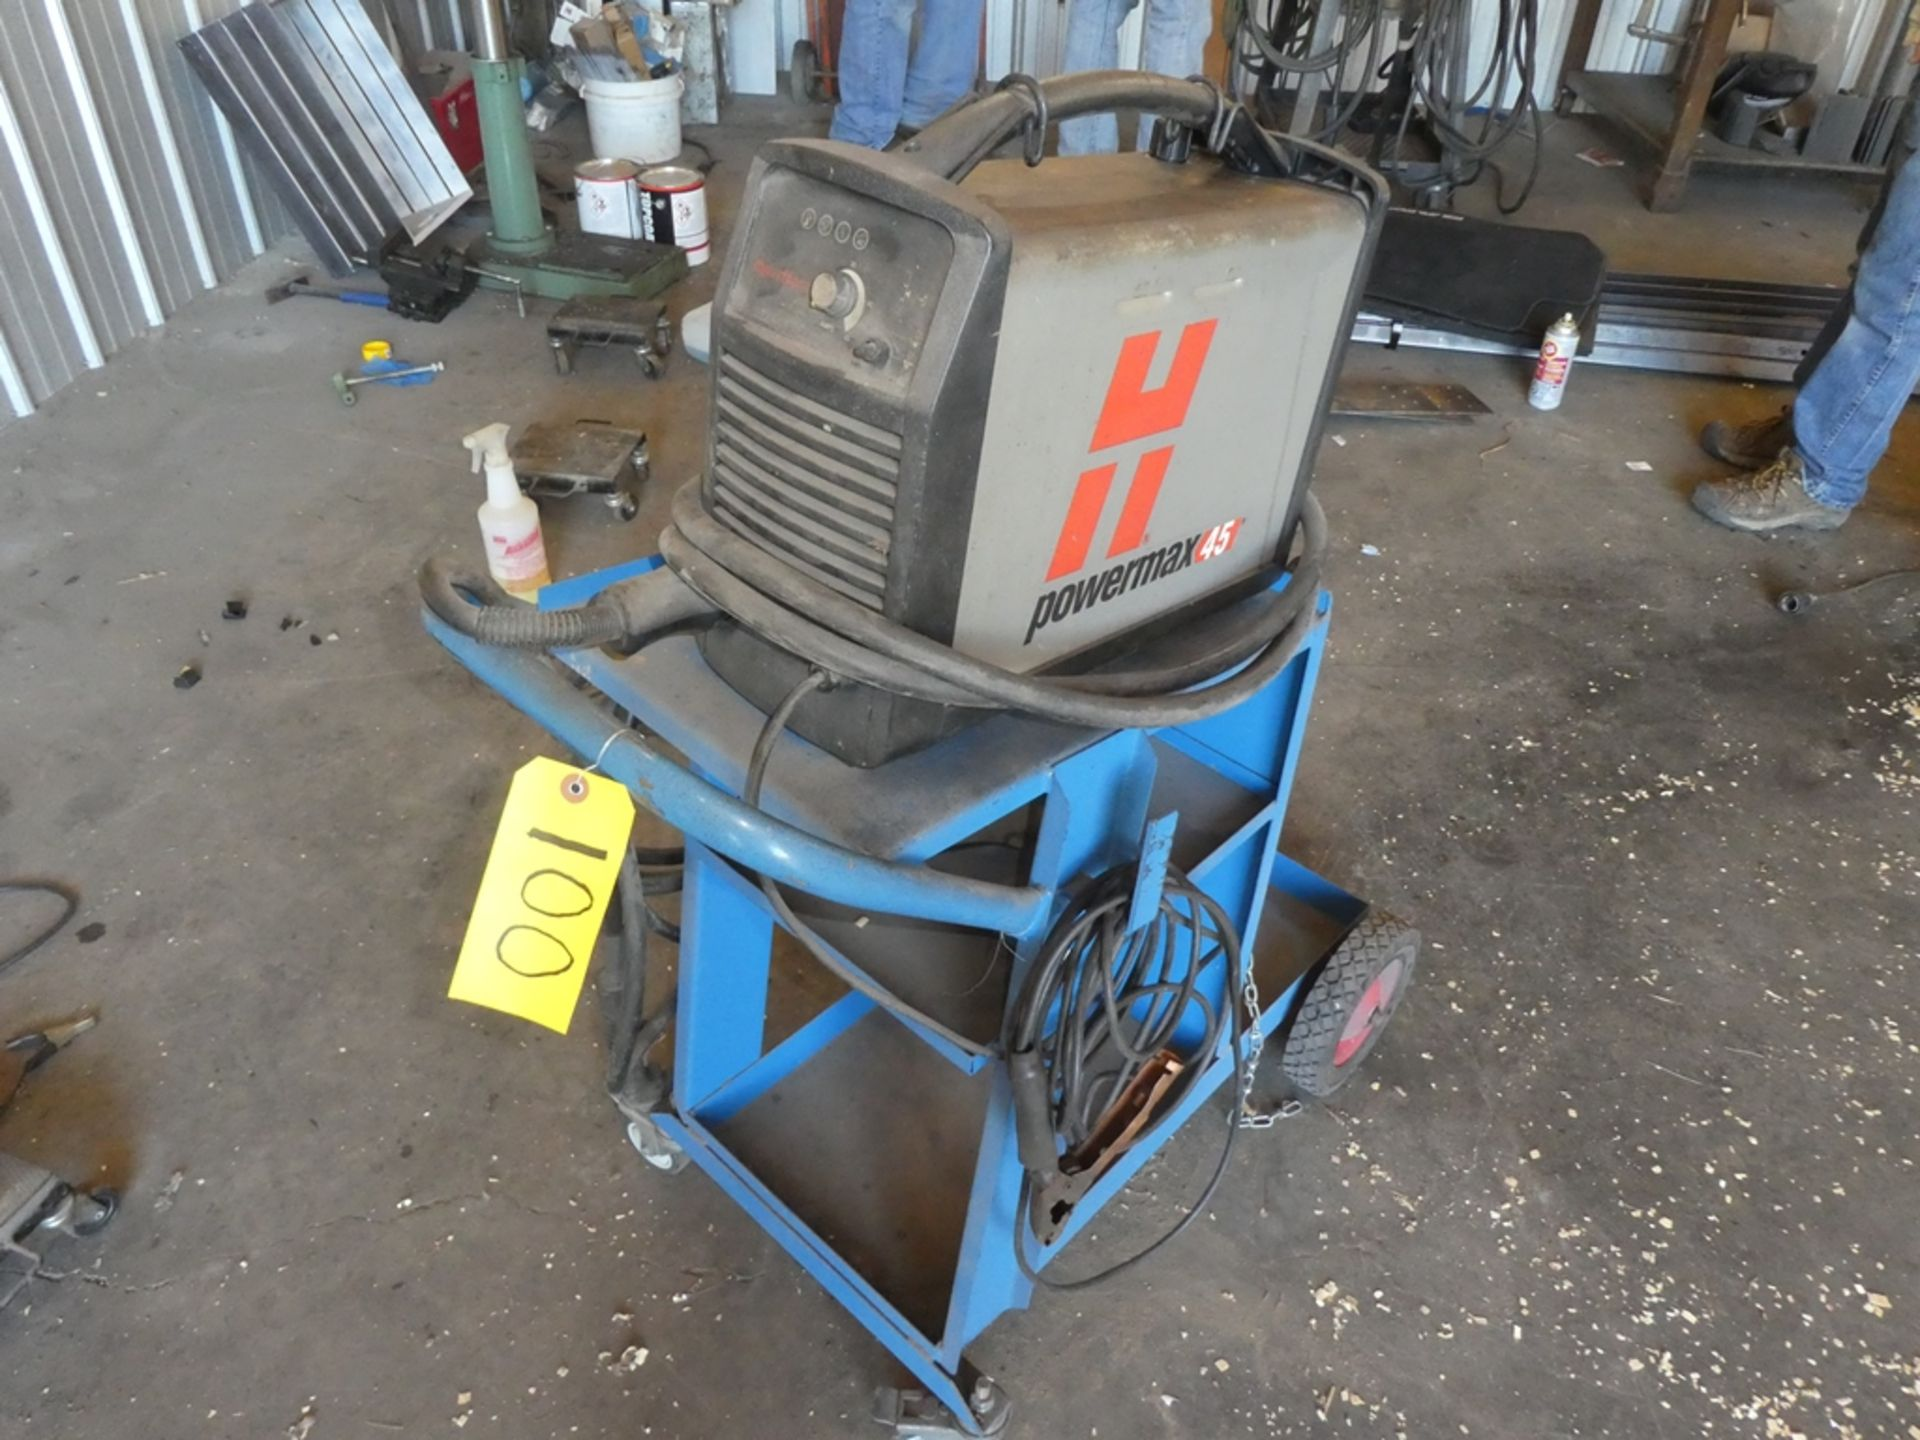 Lot 100 - HYPER THERM POWER MAX 45 PLASMA CUTTER W/ CART S/N 454837